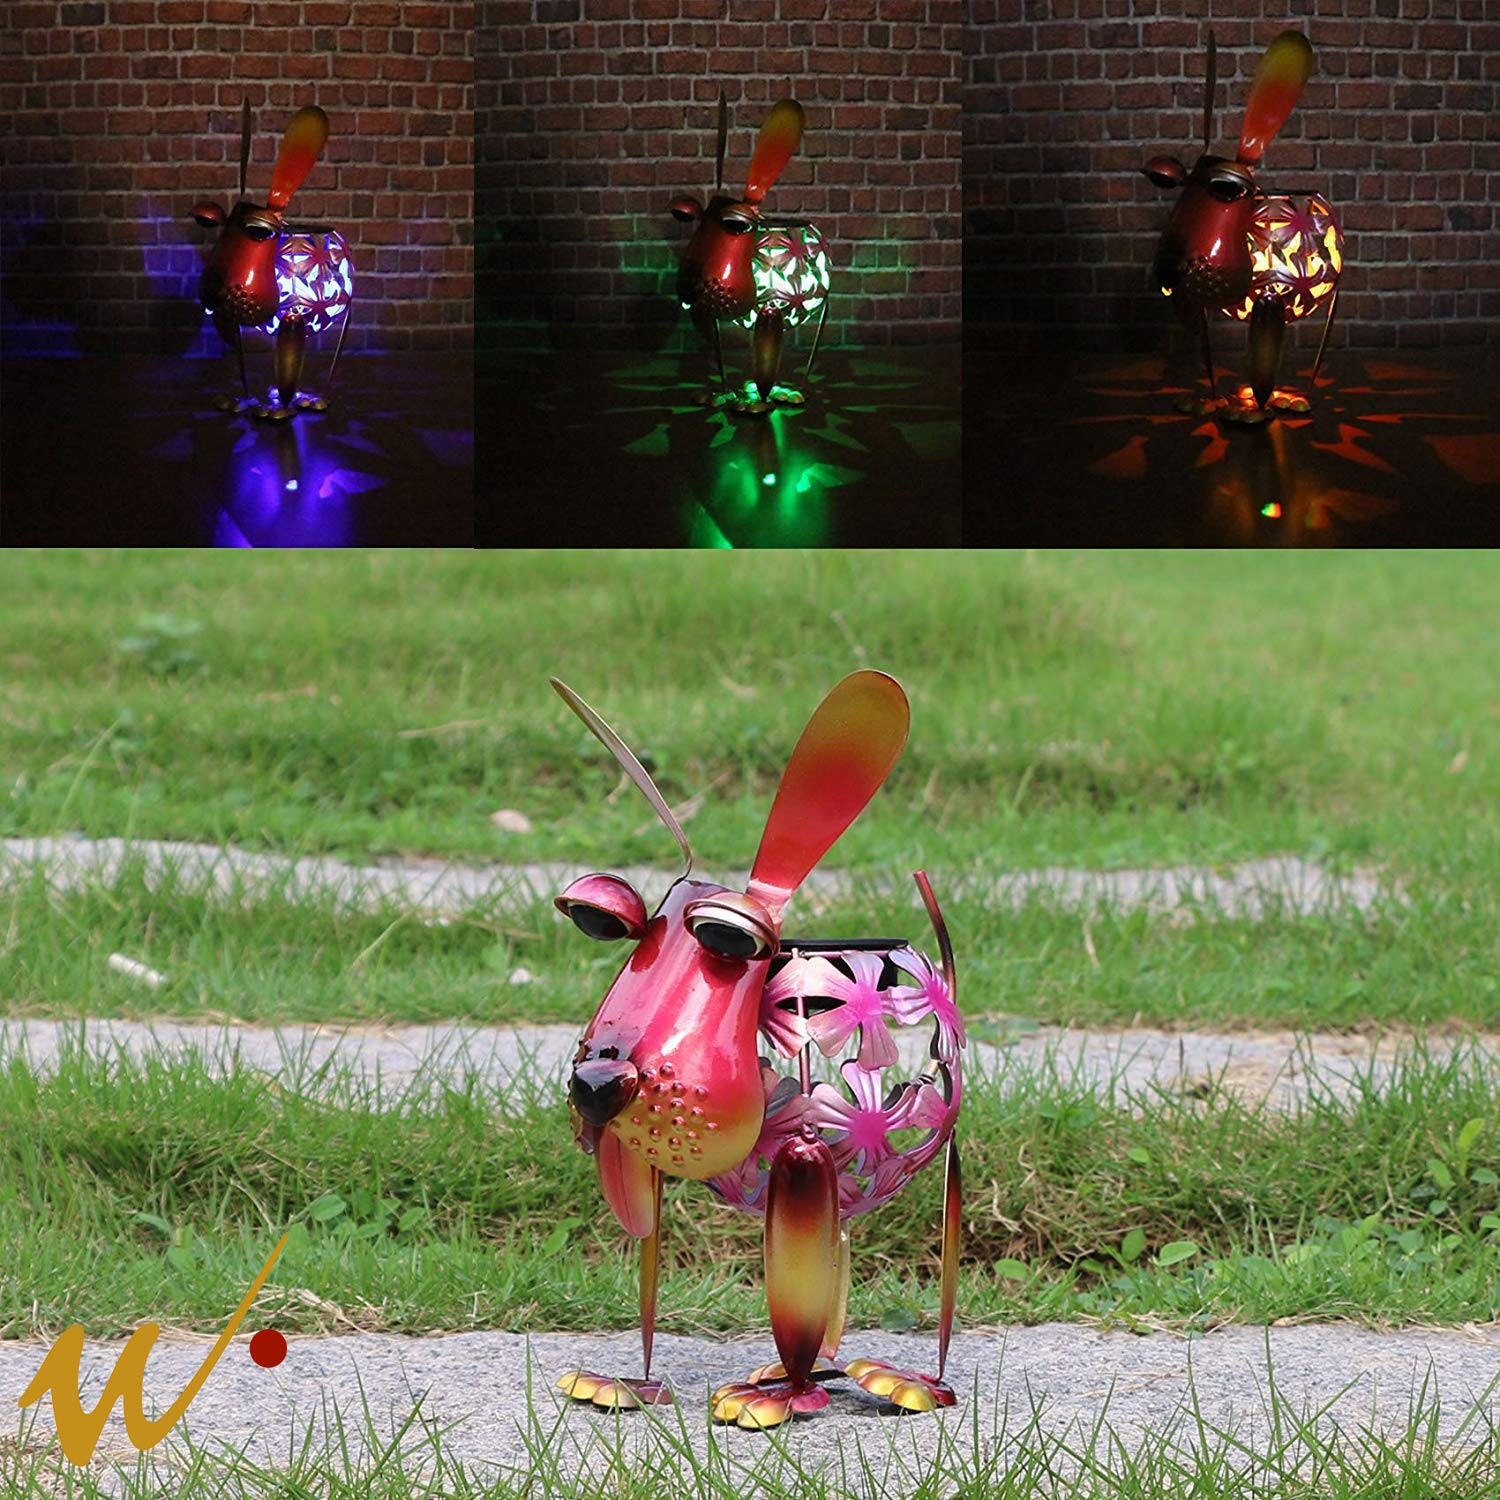 W-DIAN Solar Garden Lights Metal Art Outdoor Patio Decorative Animal Decor LED Lawn Metal Decorative Dog Statue